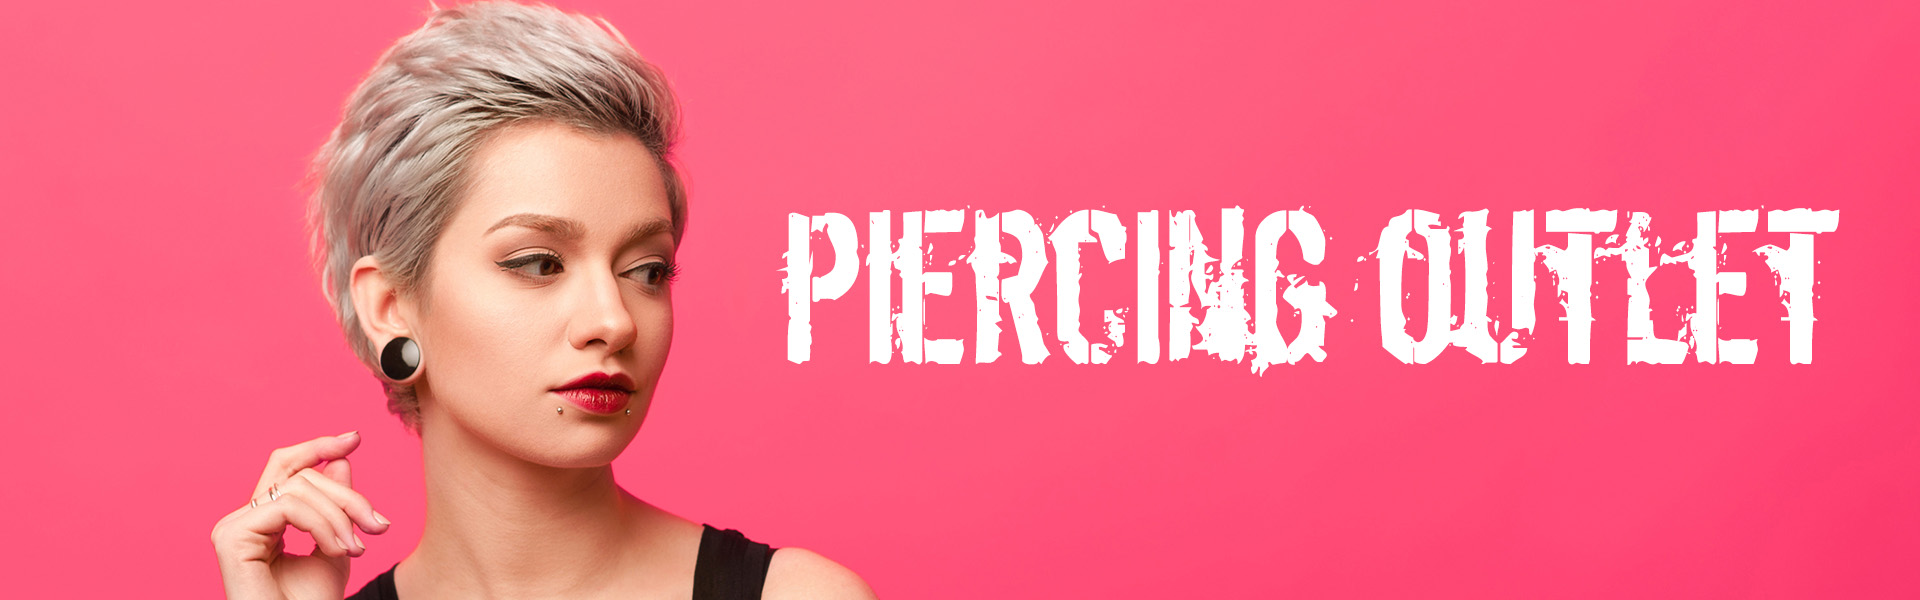 Piercing Outlet